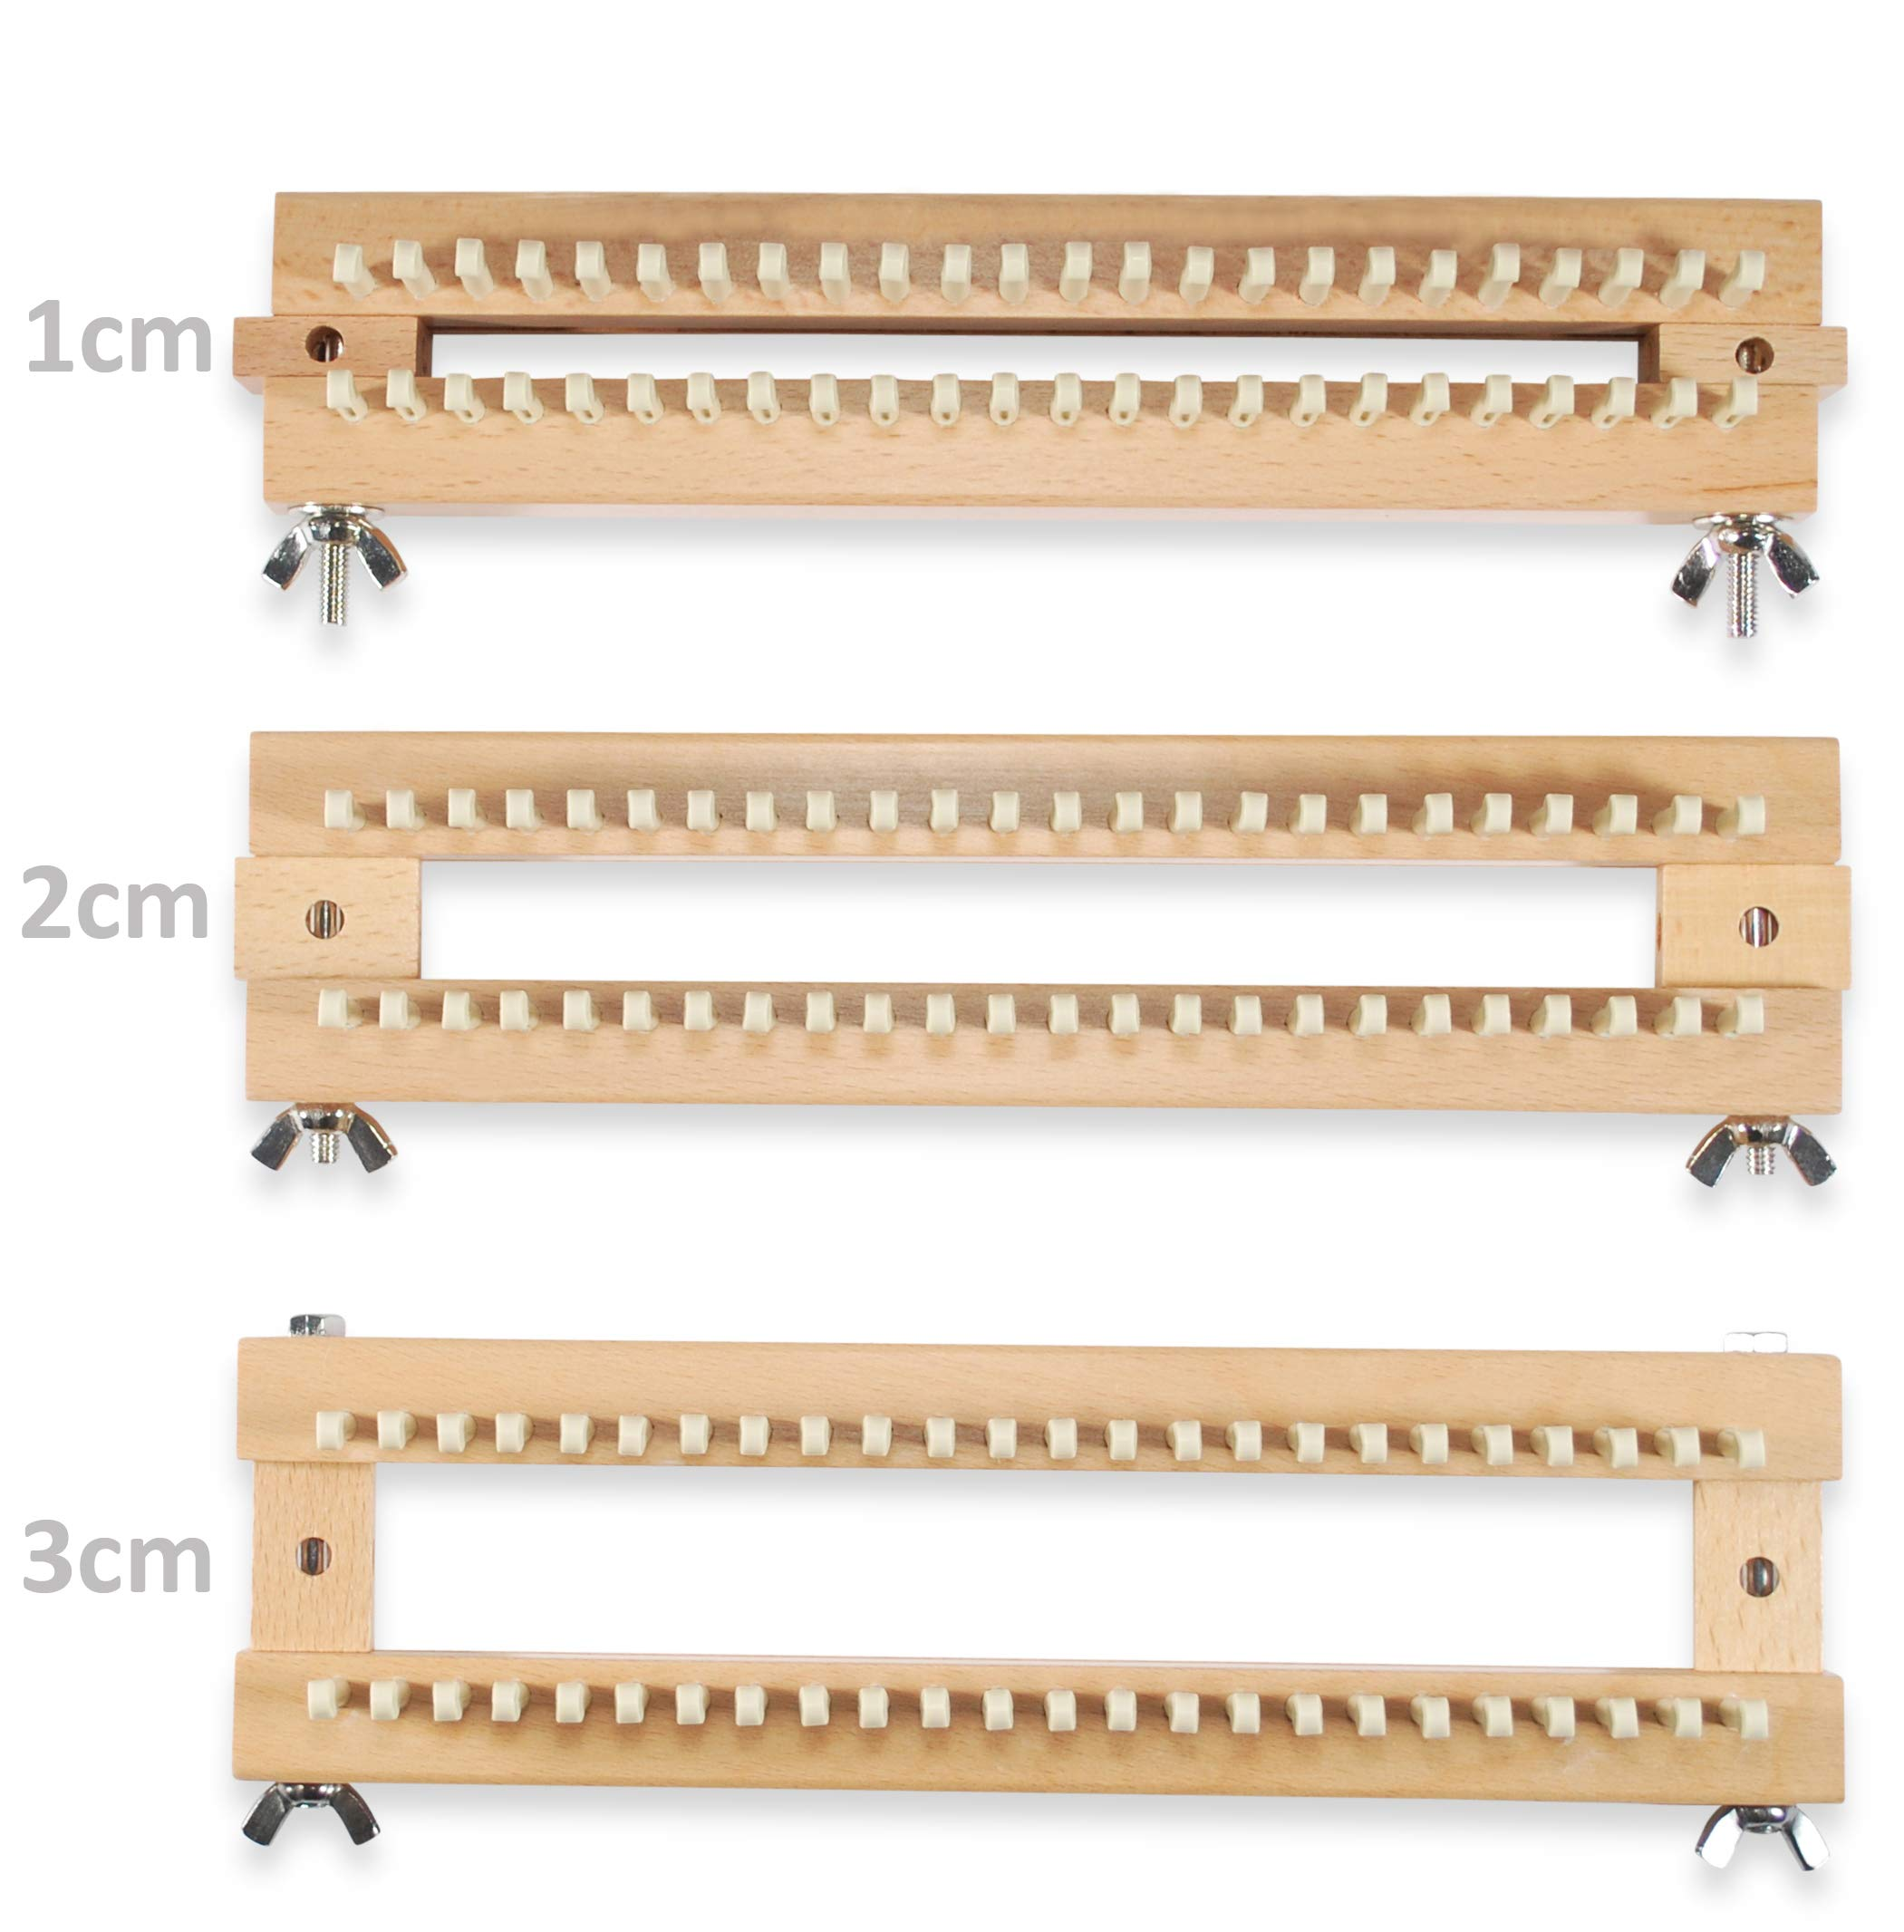 Authentic Knitting Board Loom, 10-Inch by Authentic Knitting Board (Image #2)